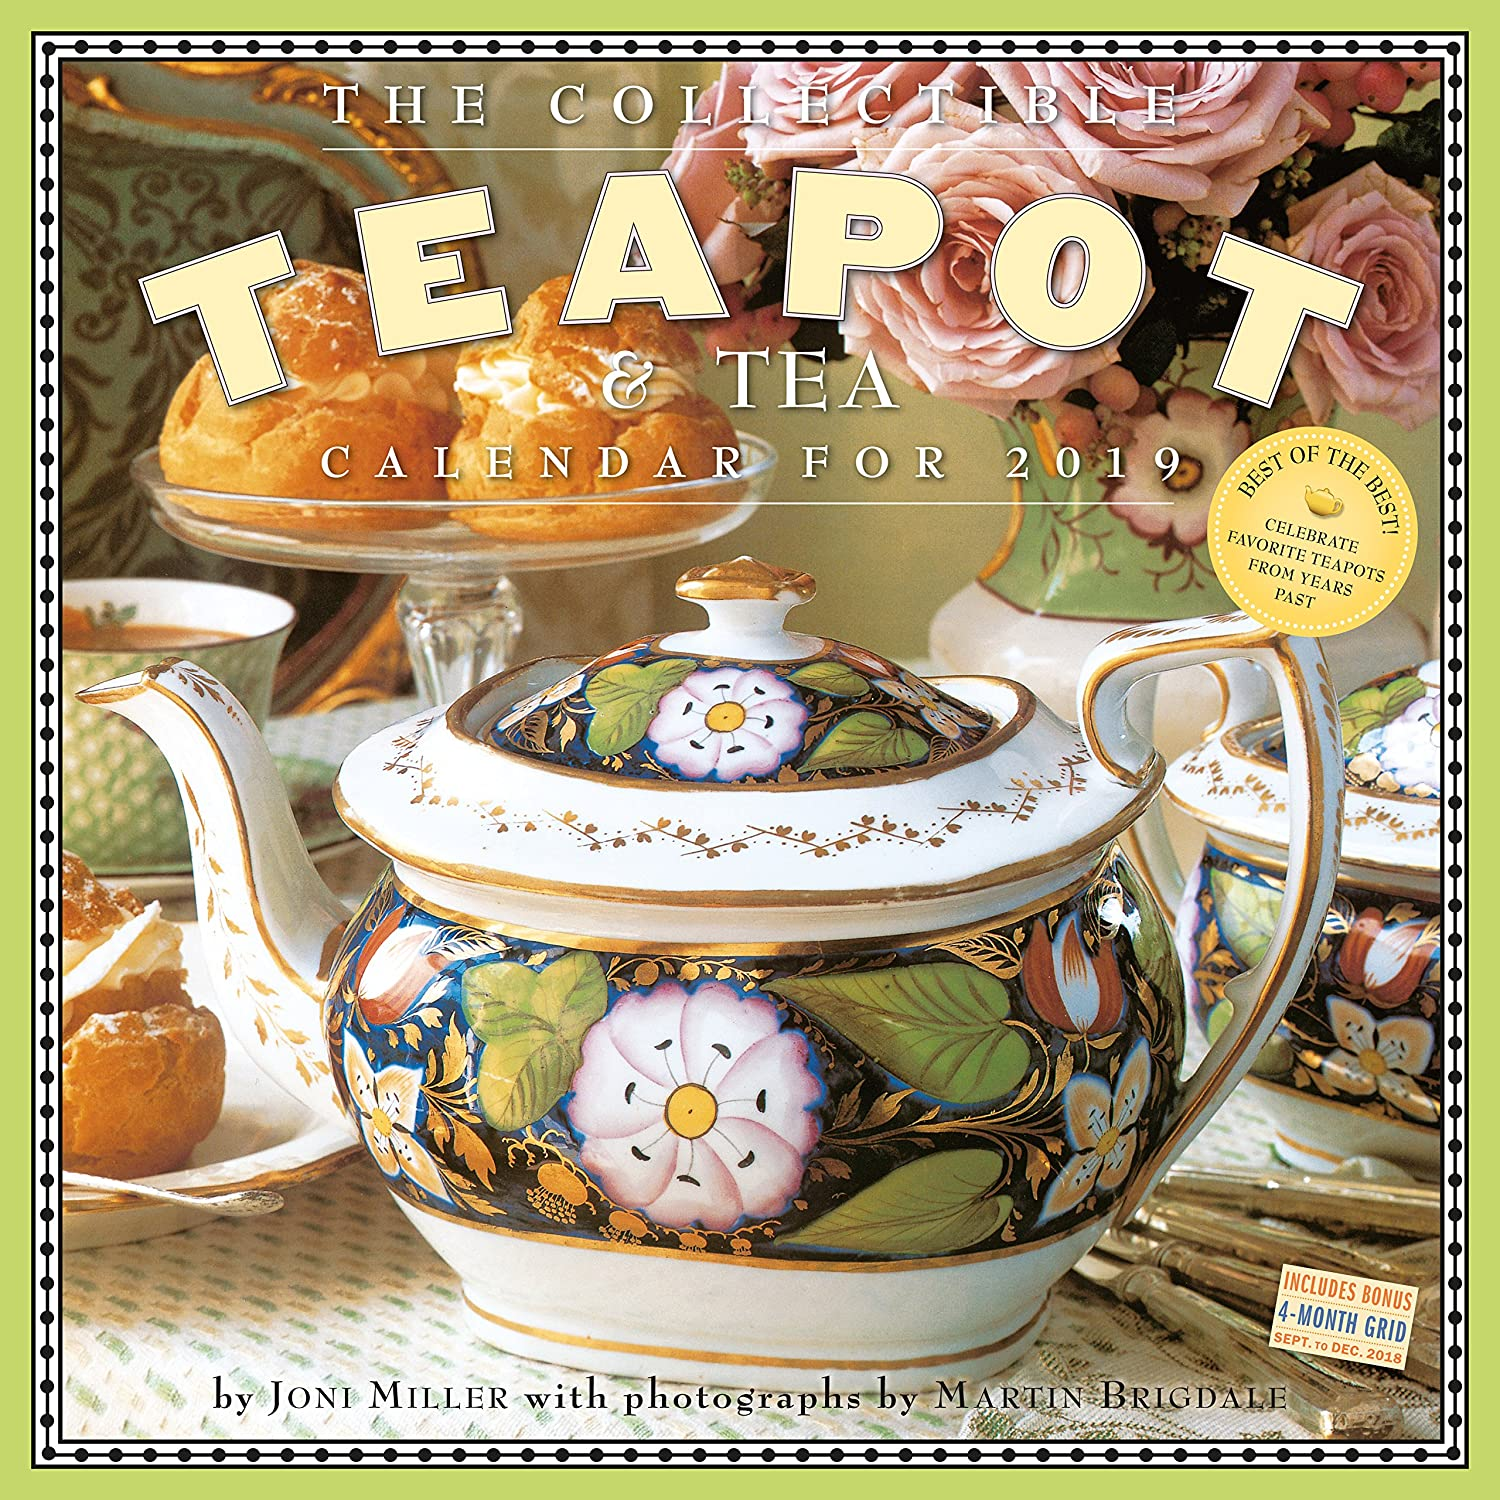 The Collectible Teapot & Tea Wall Calendar 2019 Workman Publishing Workman Publishing Company 1523503157 COOKING / General